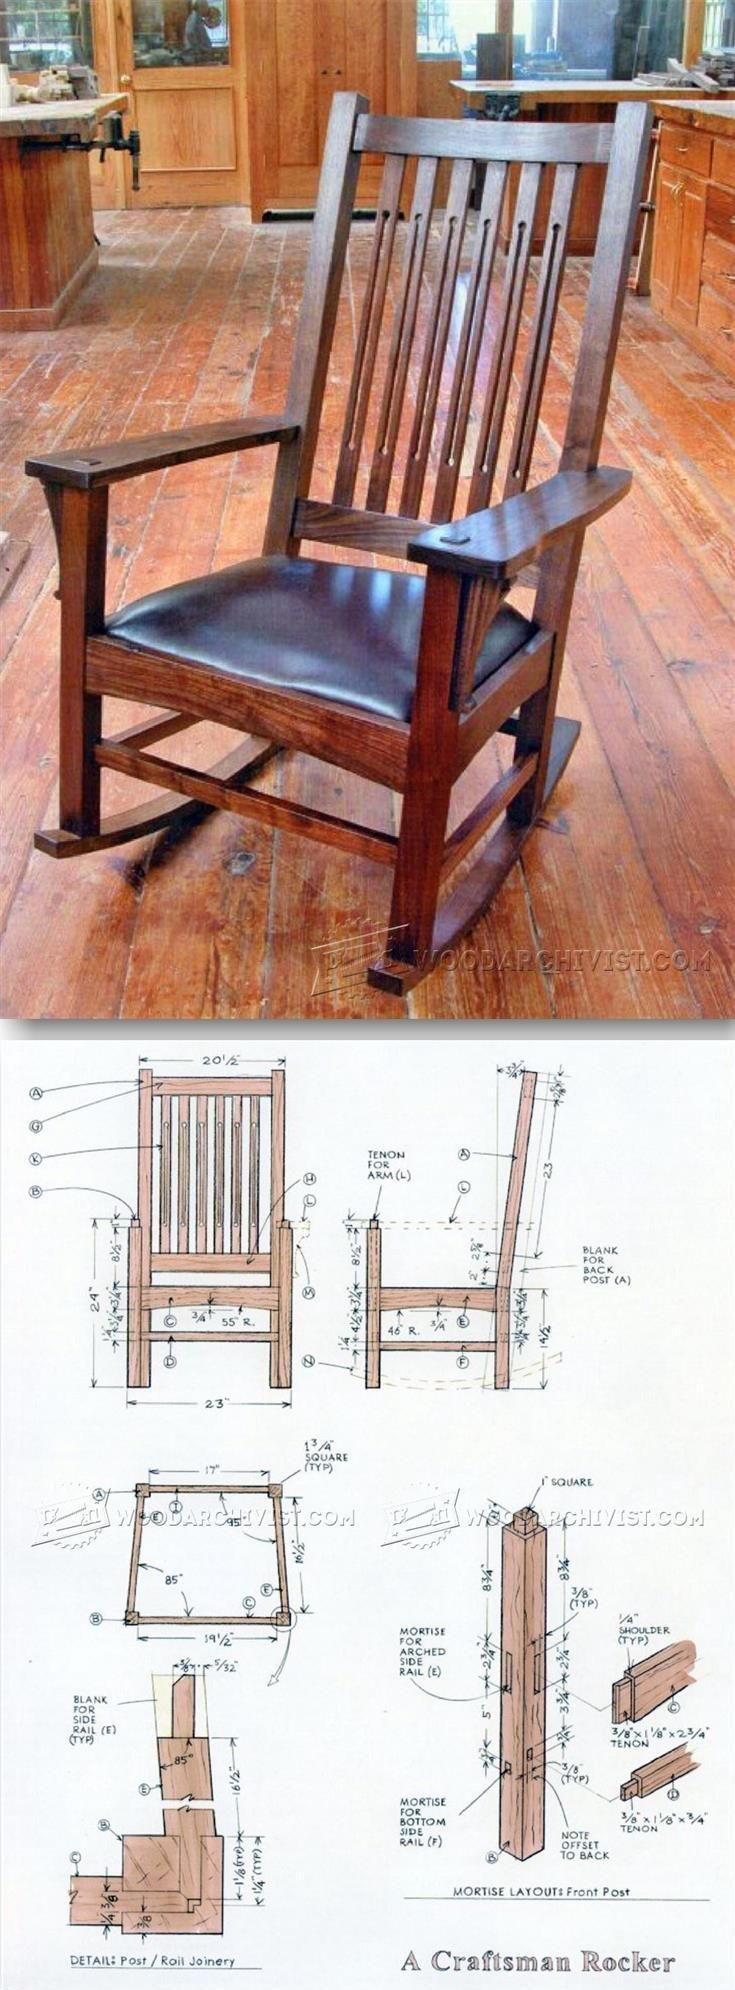 Craftsman Rocking Chair Plans - Furniture Plans and Projects  | http://WoodArchivist.com